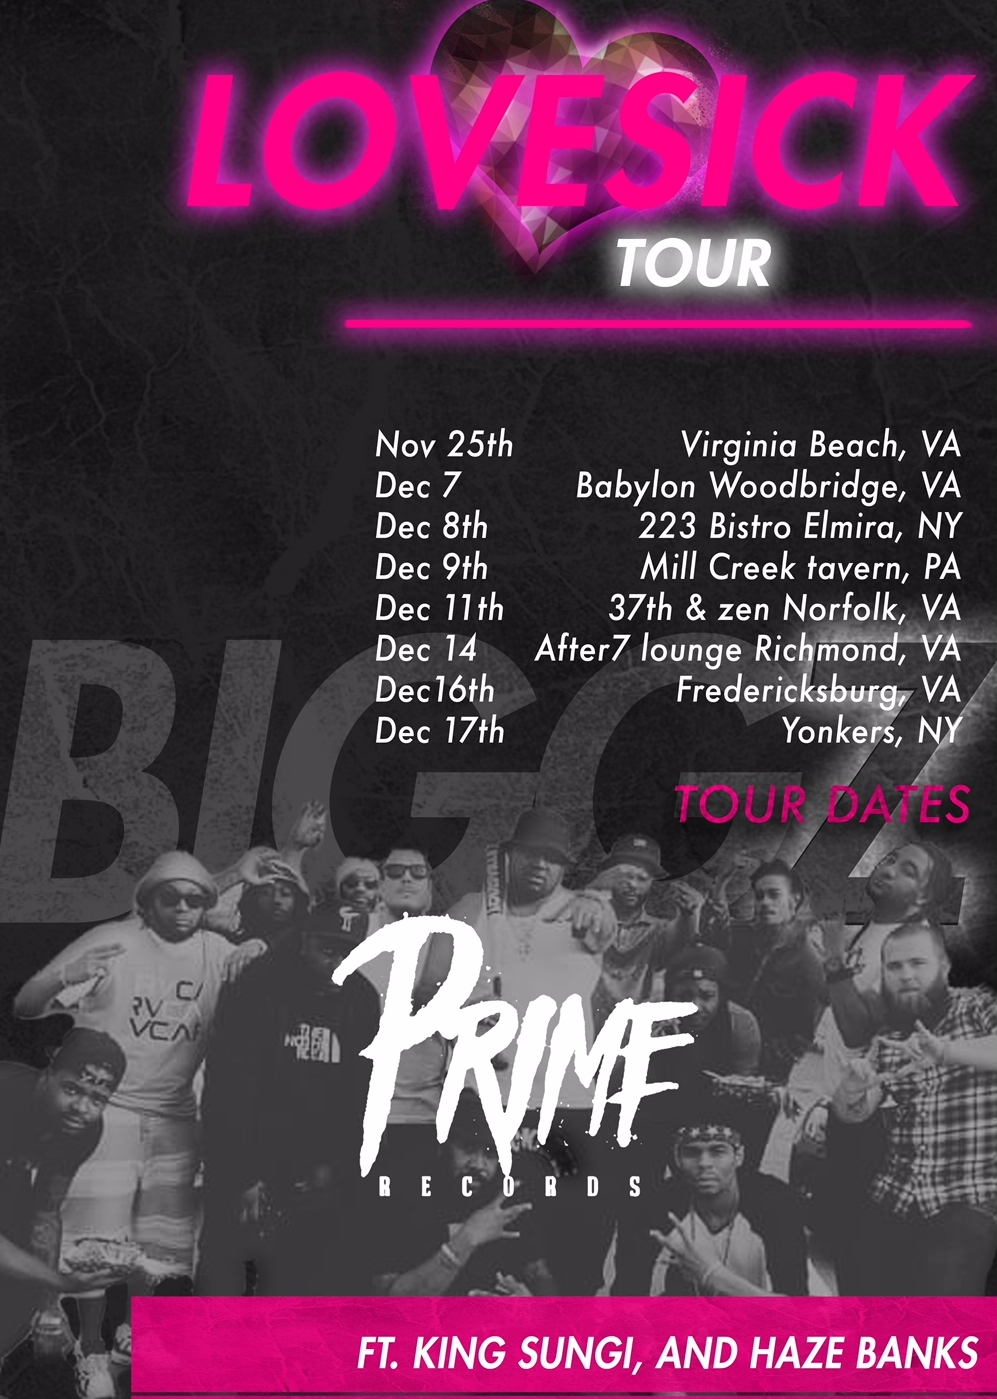 THE LOVE SICK TOUR COMING TO A VENUE NEAR YOU SOON ---WINTER 2017---